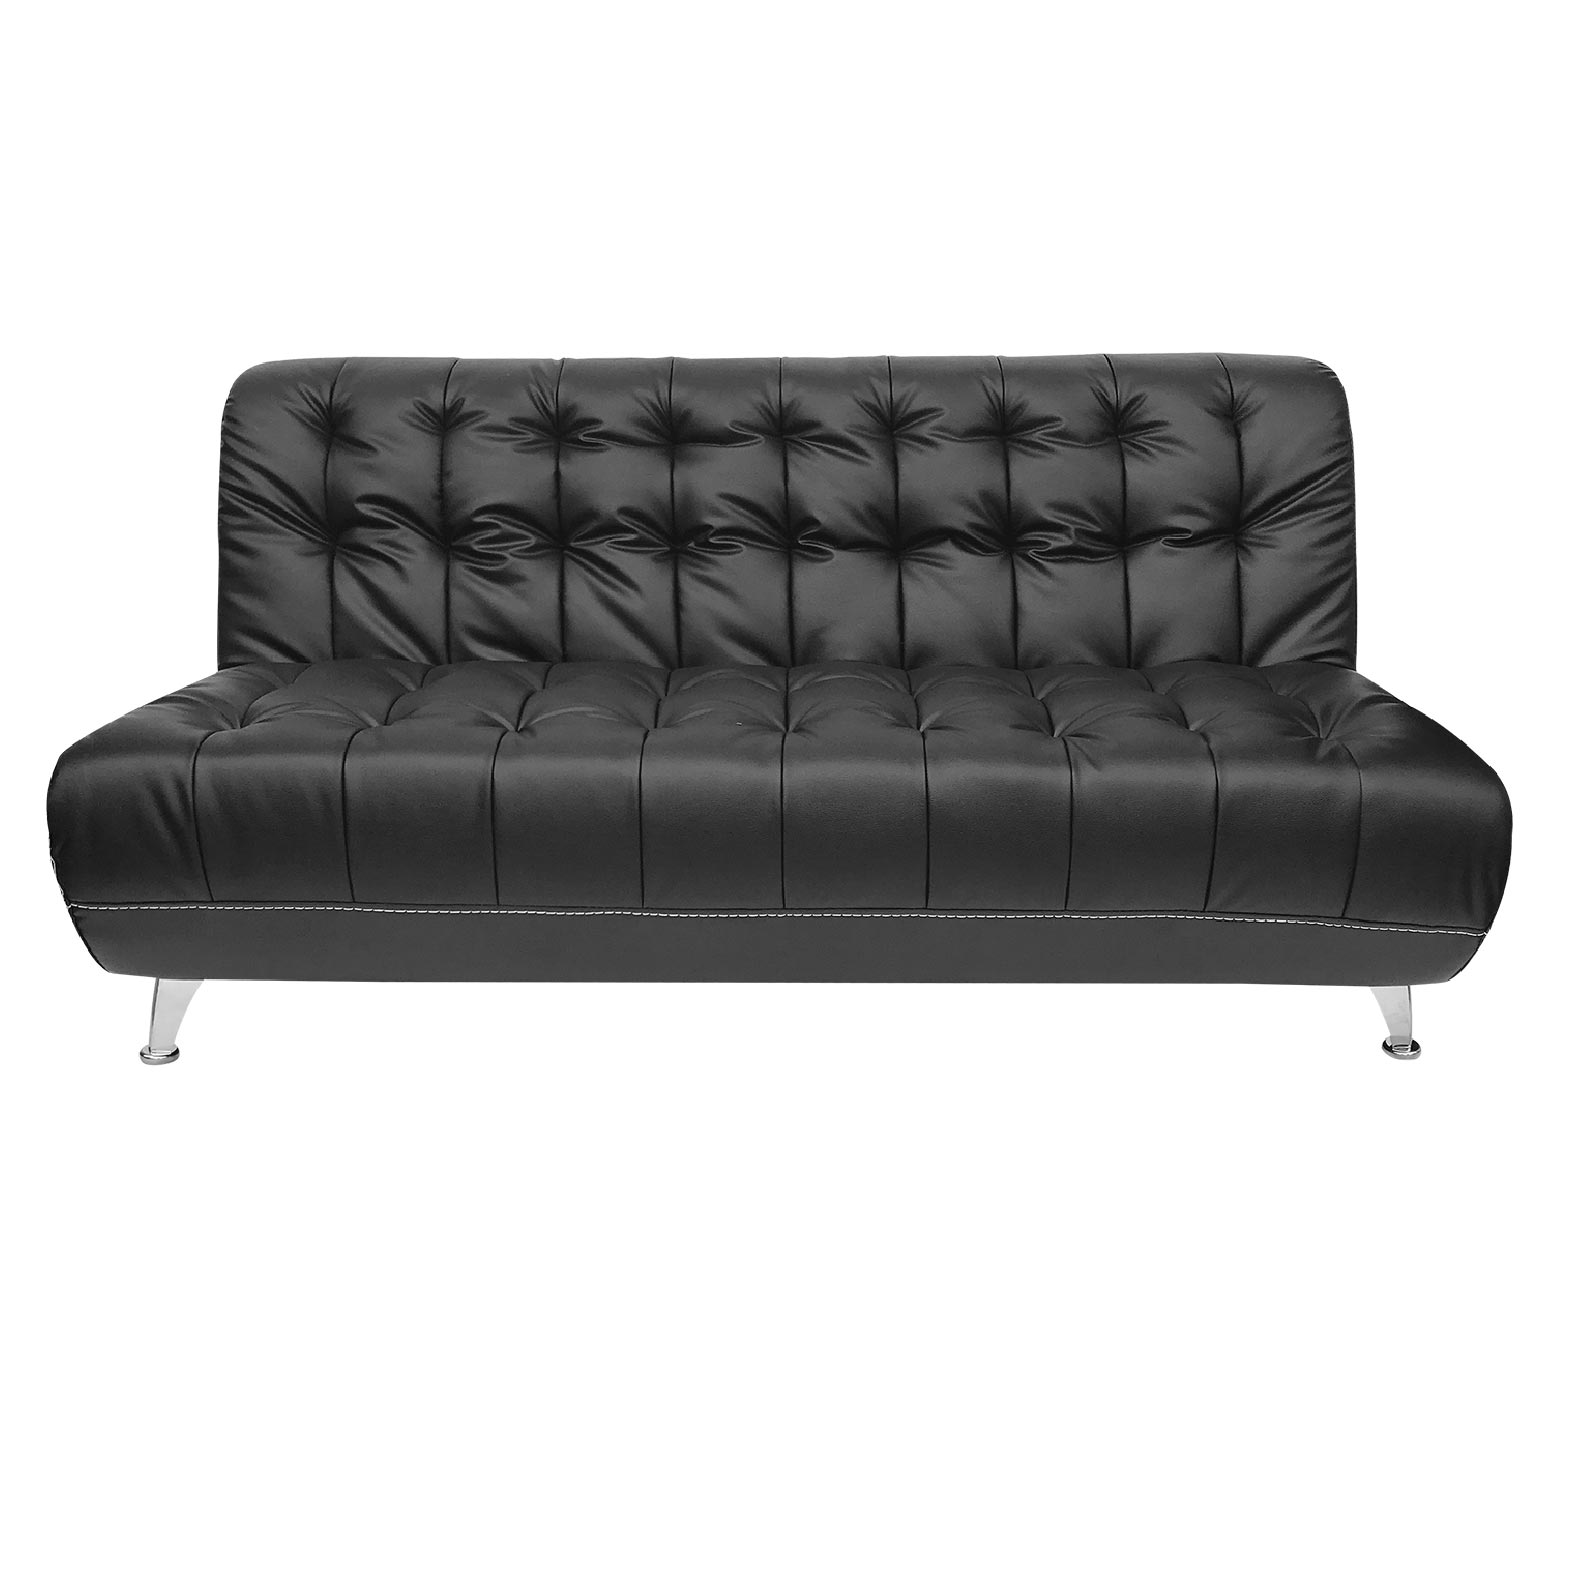 Cosy sofa triple Black